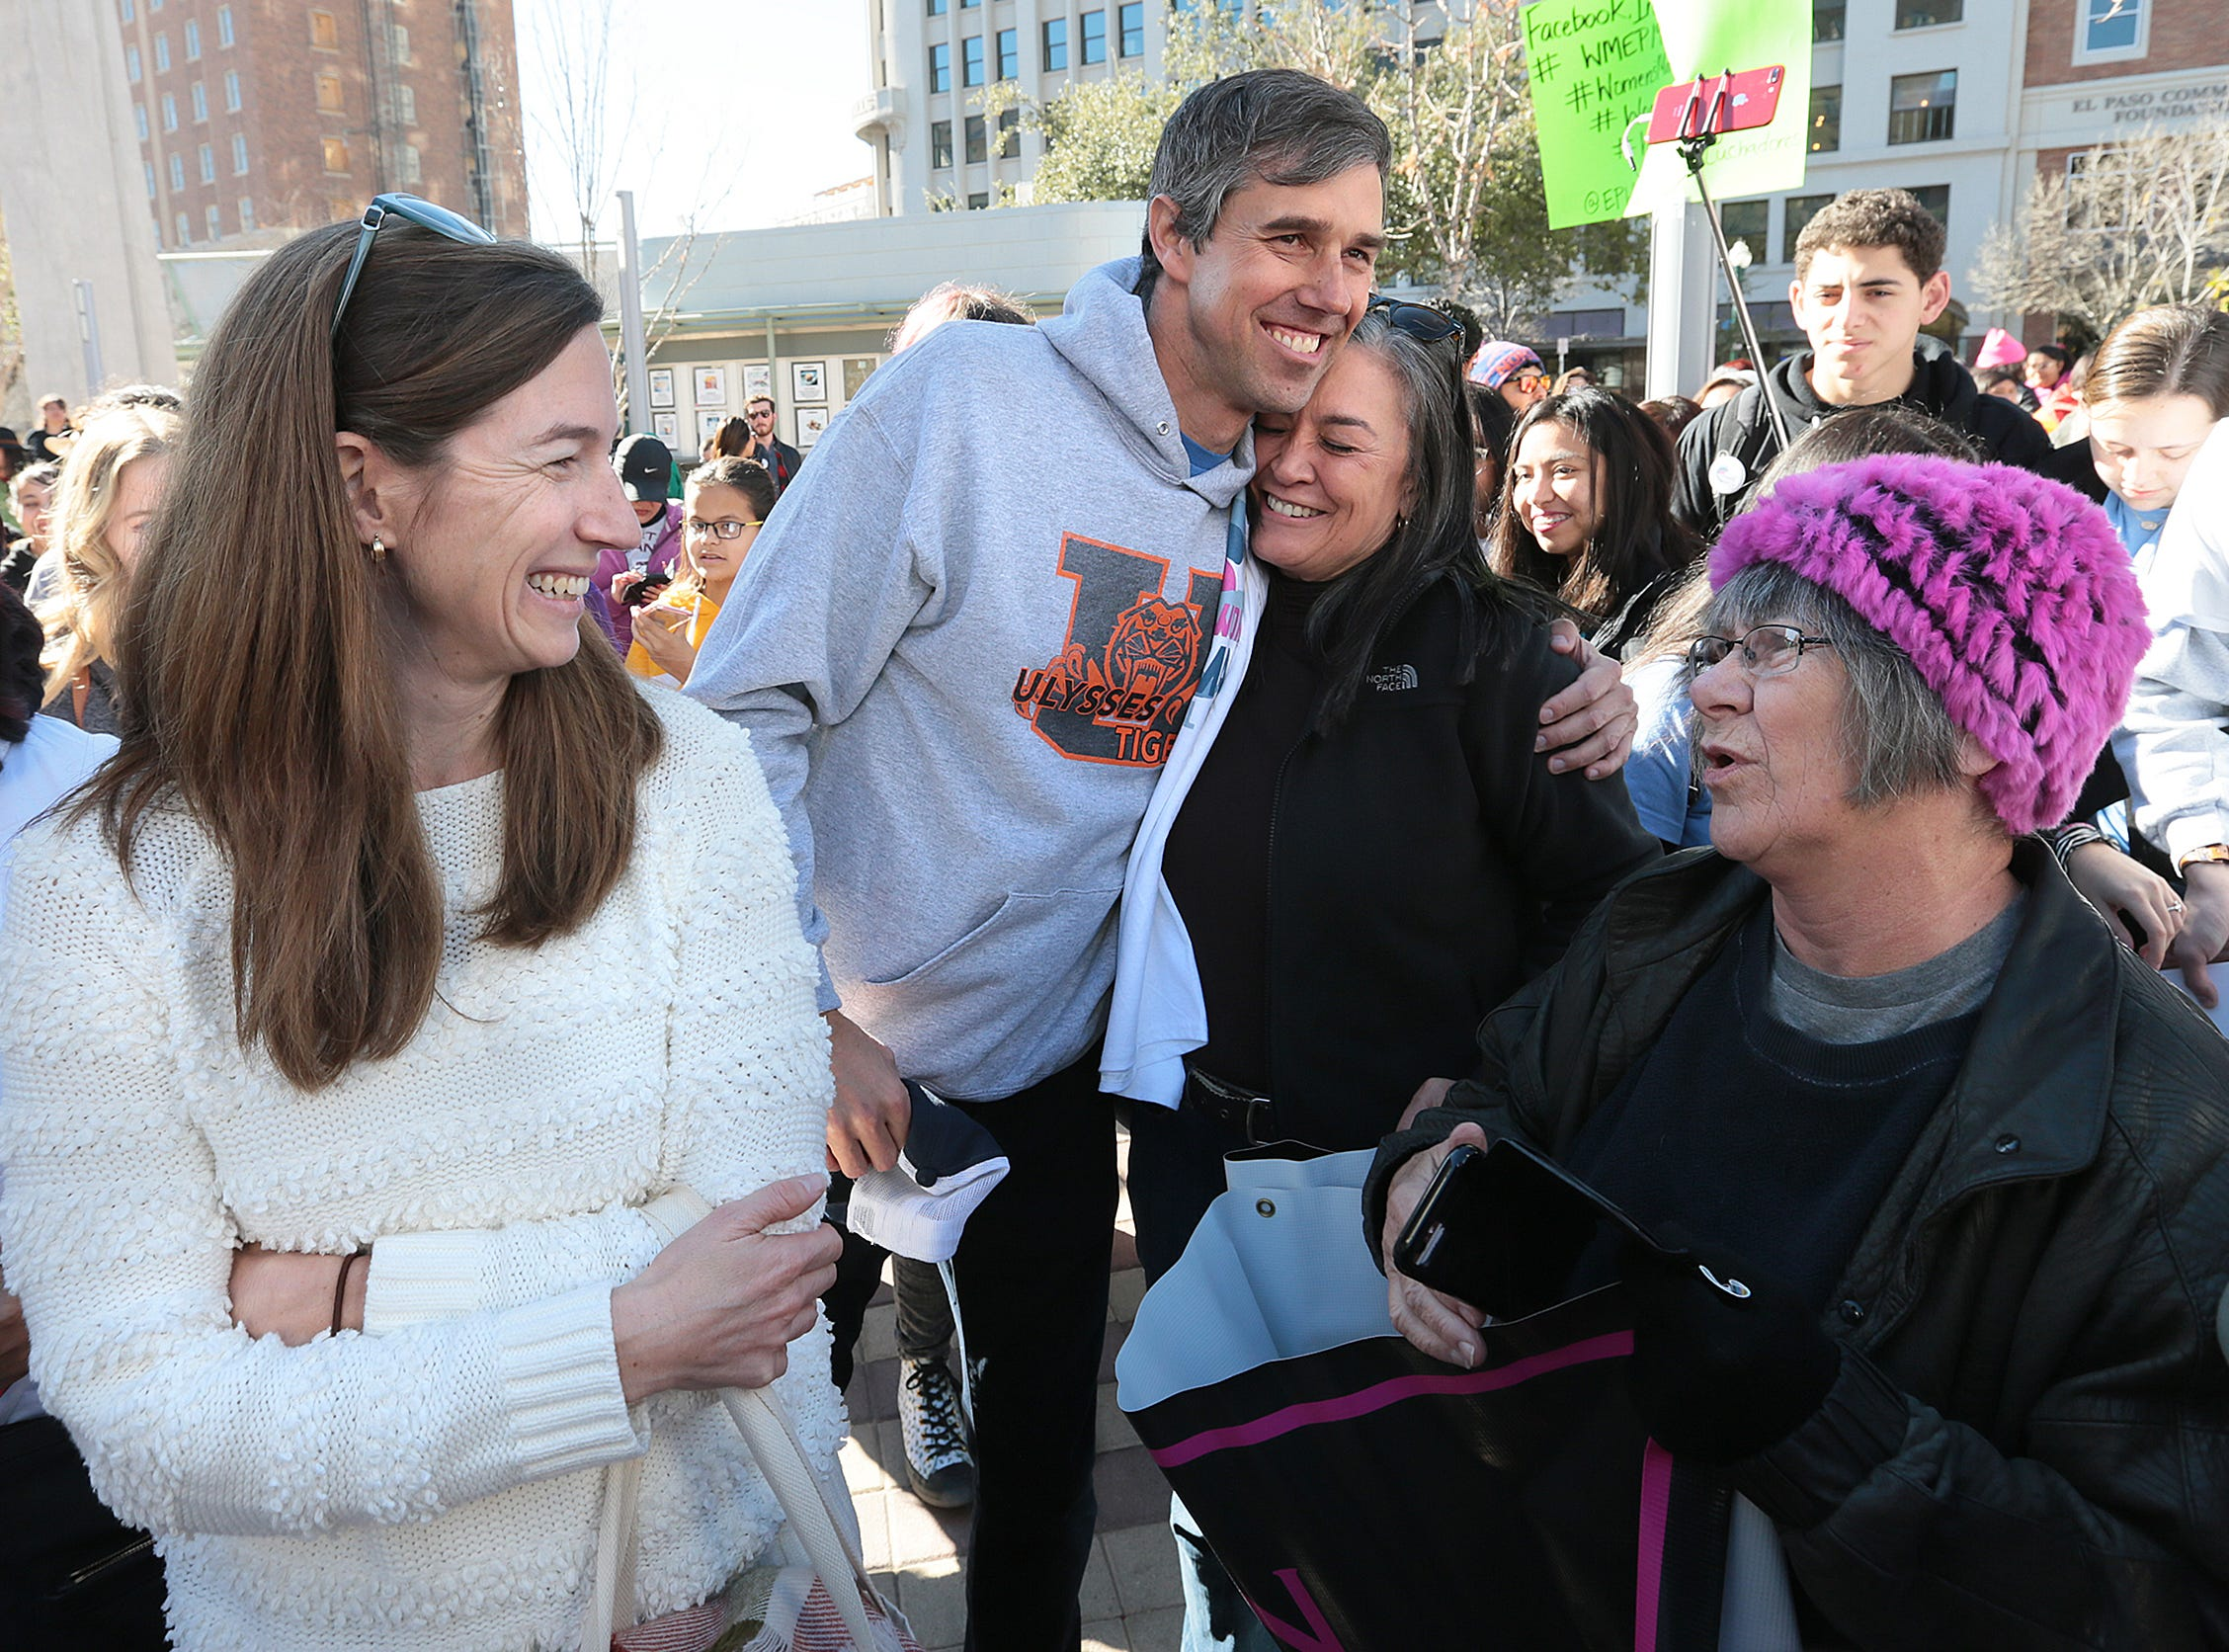 Beto O'Rourke attended the El Paso Women's March with his wife Amy Sanders O'Rourke Saturday in downtown El Paso